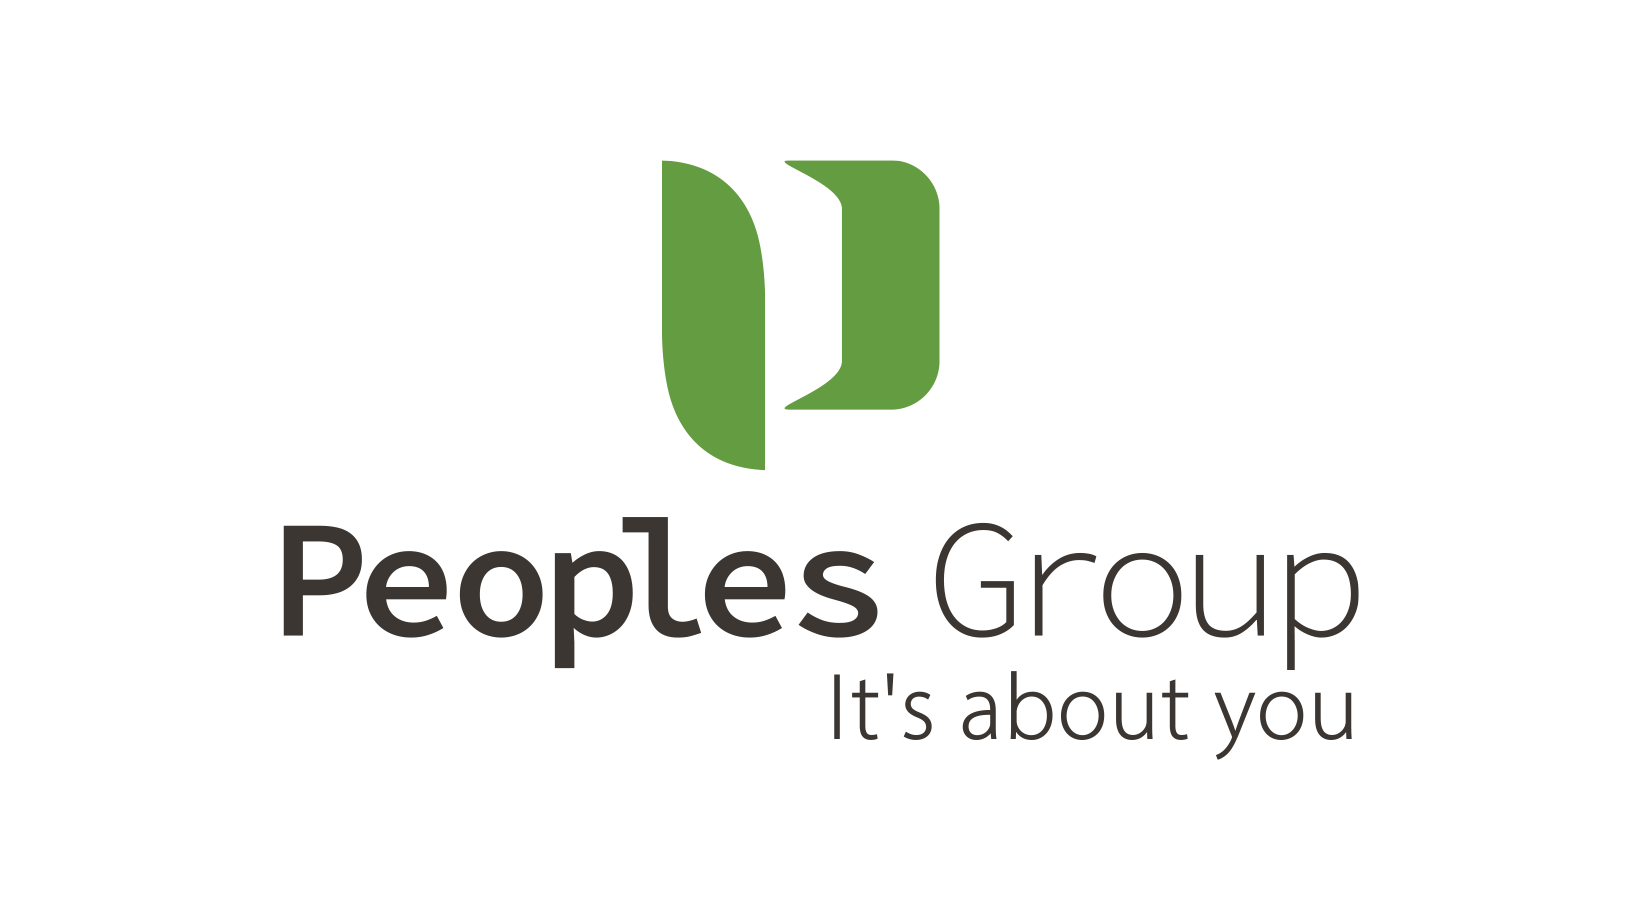 Peoples Payment Solutions Offers Access to Real-Time Payments with Interac e-Transfer® for Business